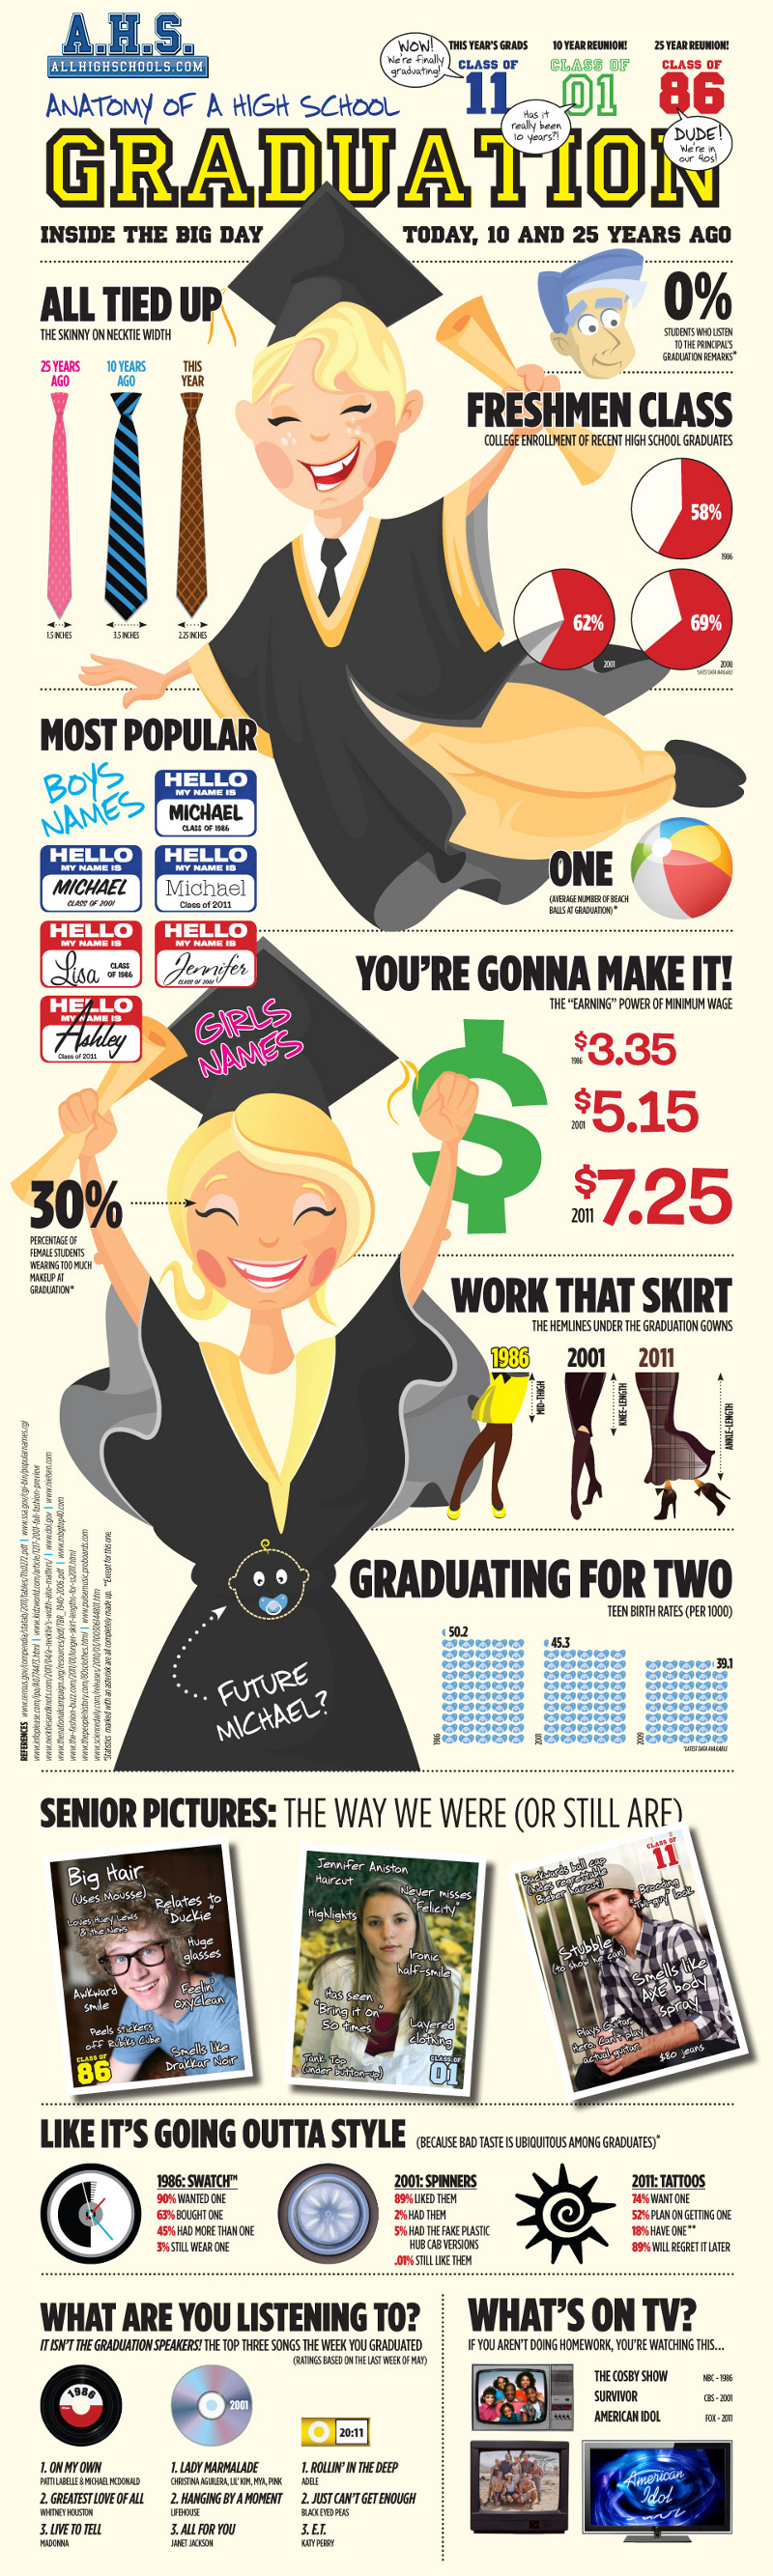 High School Graduation Trends Then and Now